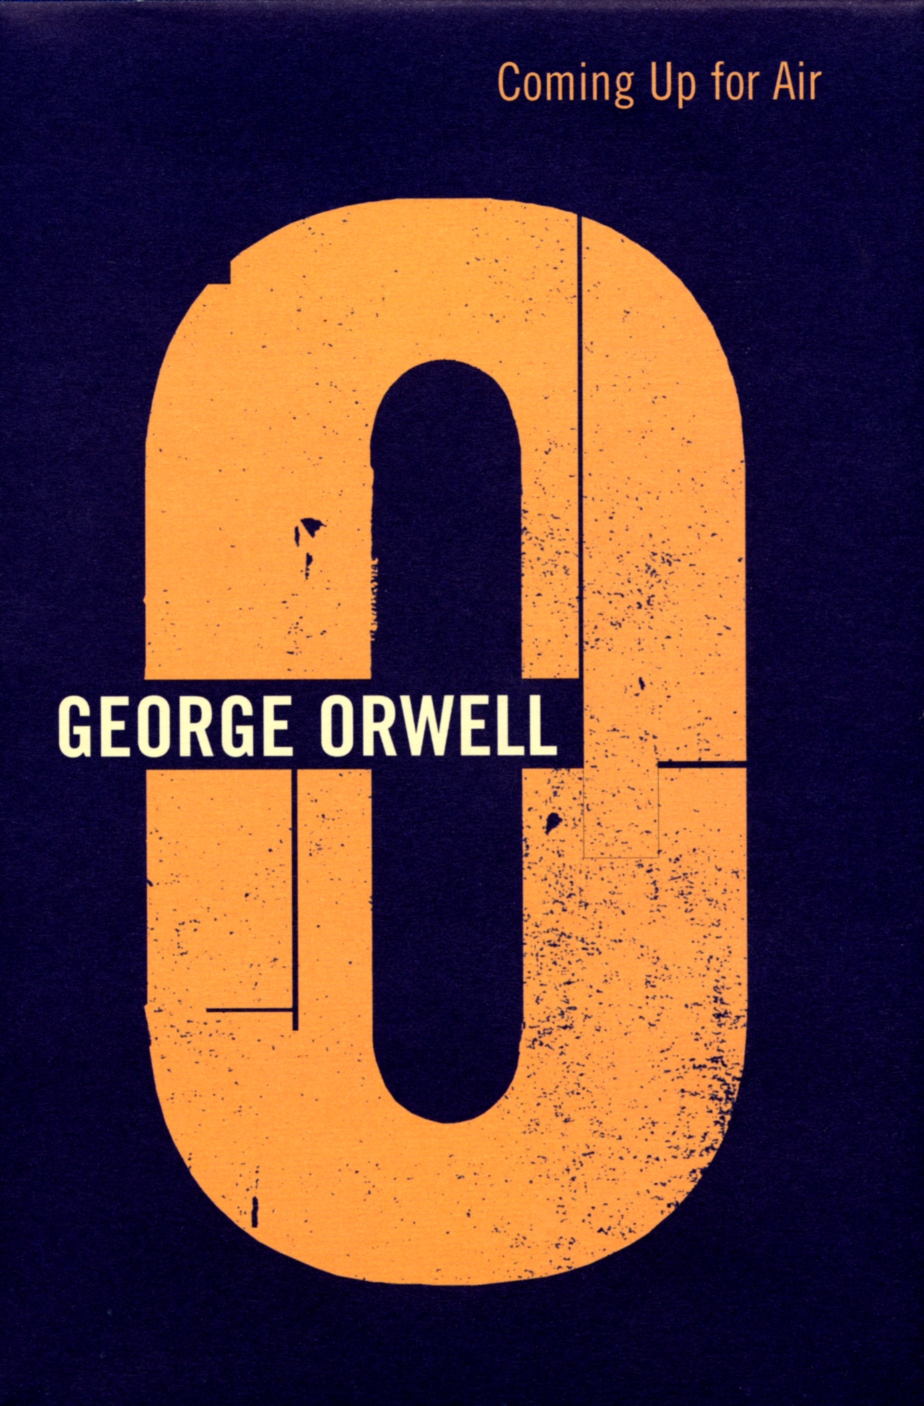 Coming Up for Air by George Orwell - Penguin Books New Zealand